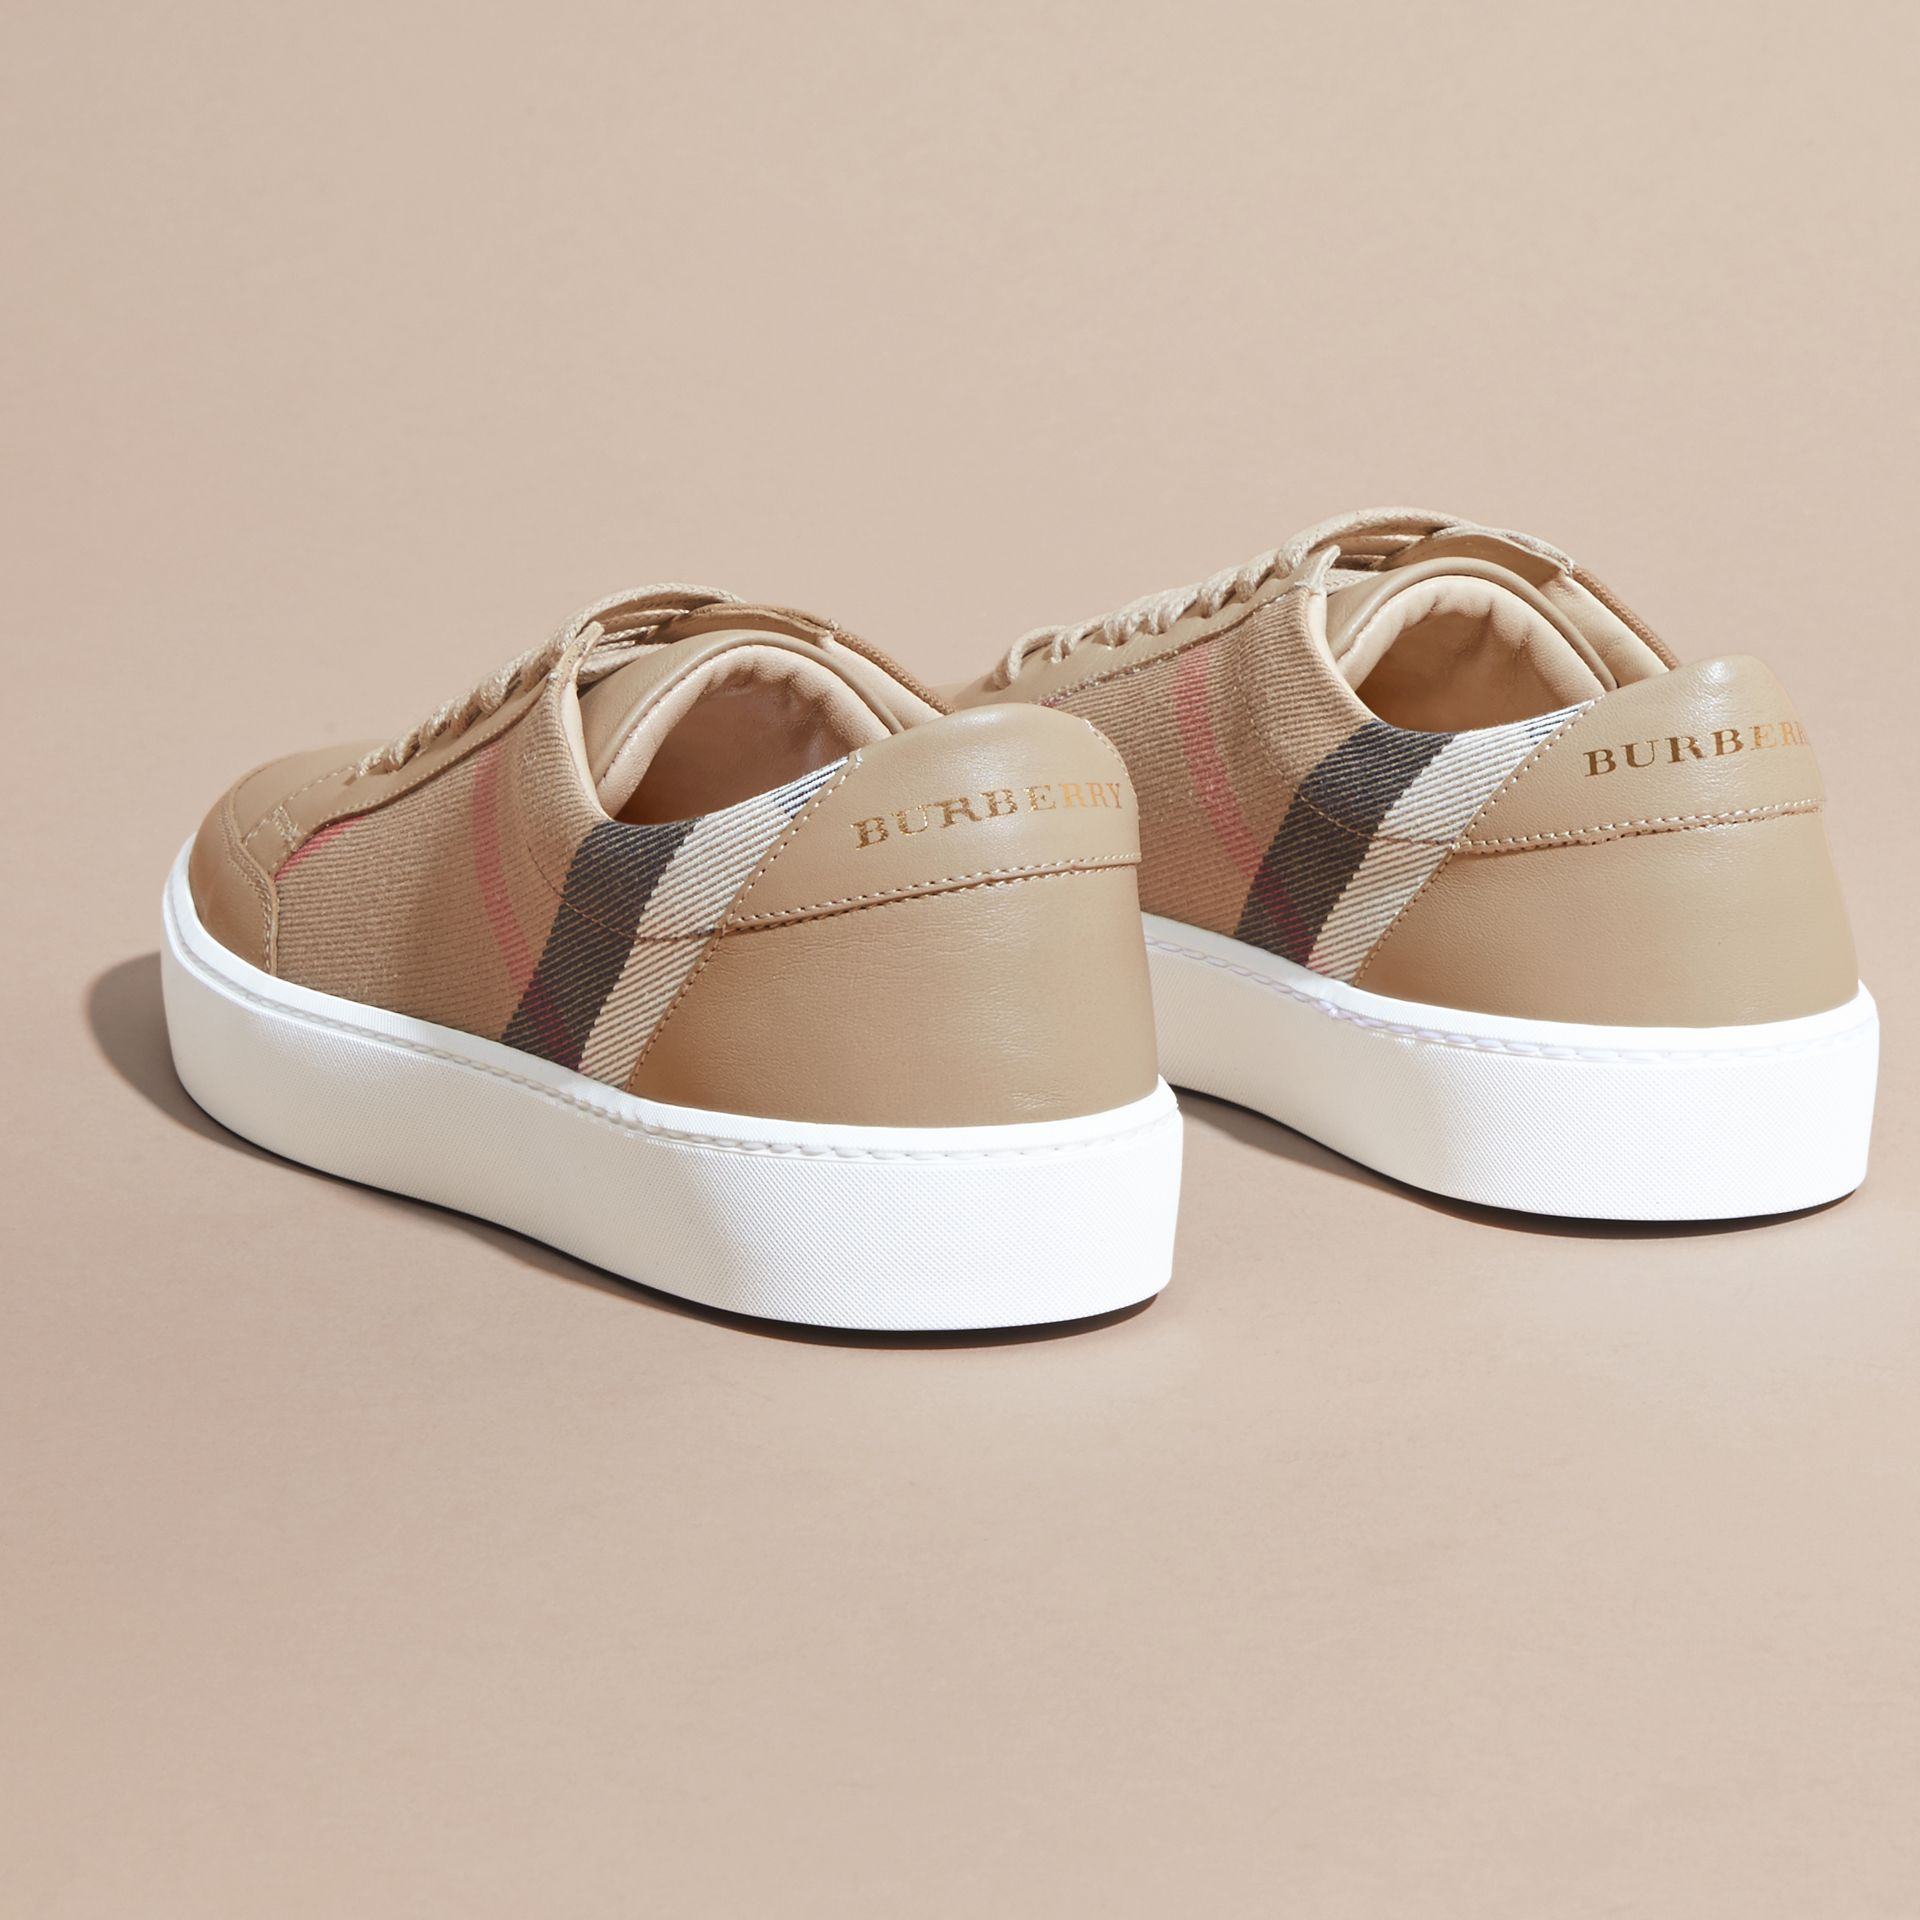 House check/ nude Check Detail Leather Sneakers House Check/ Nude - gallery image 4